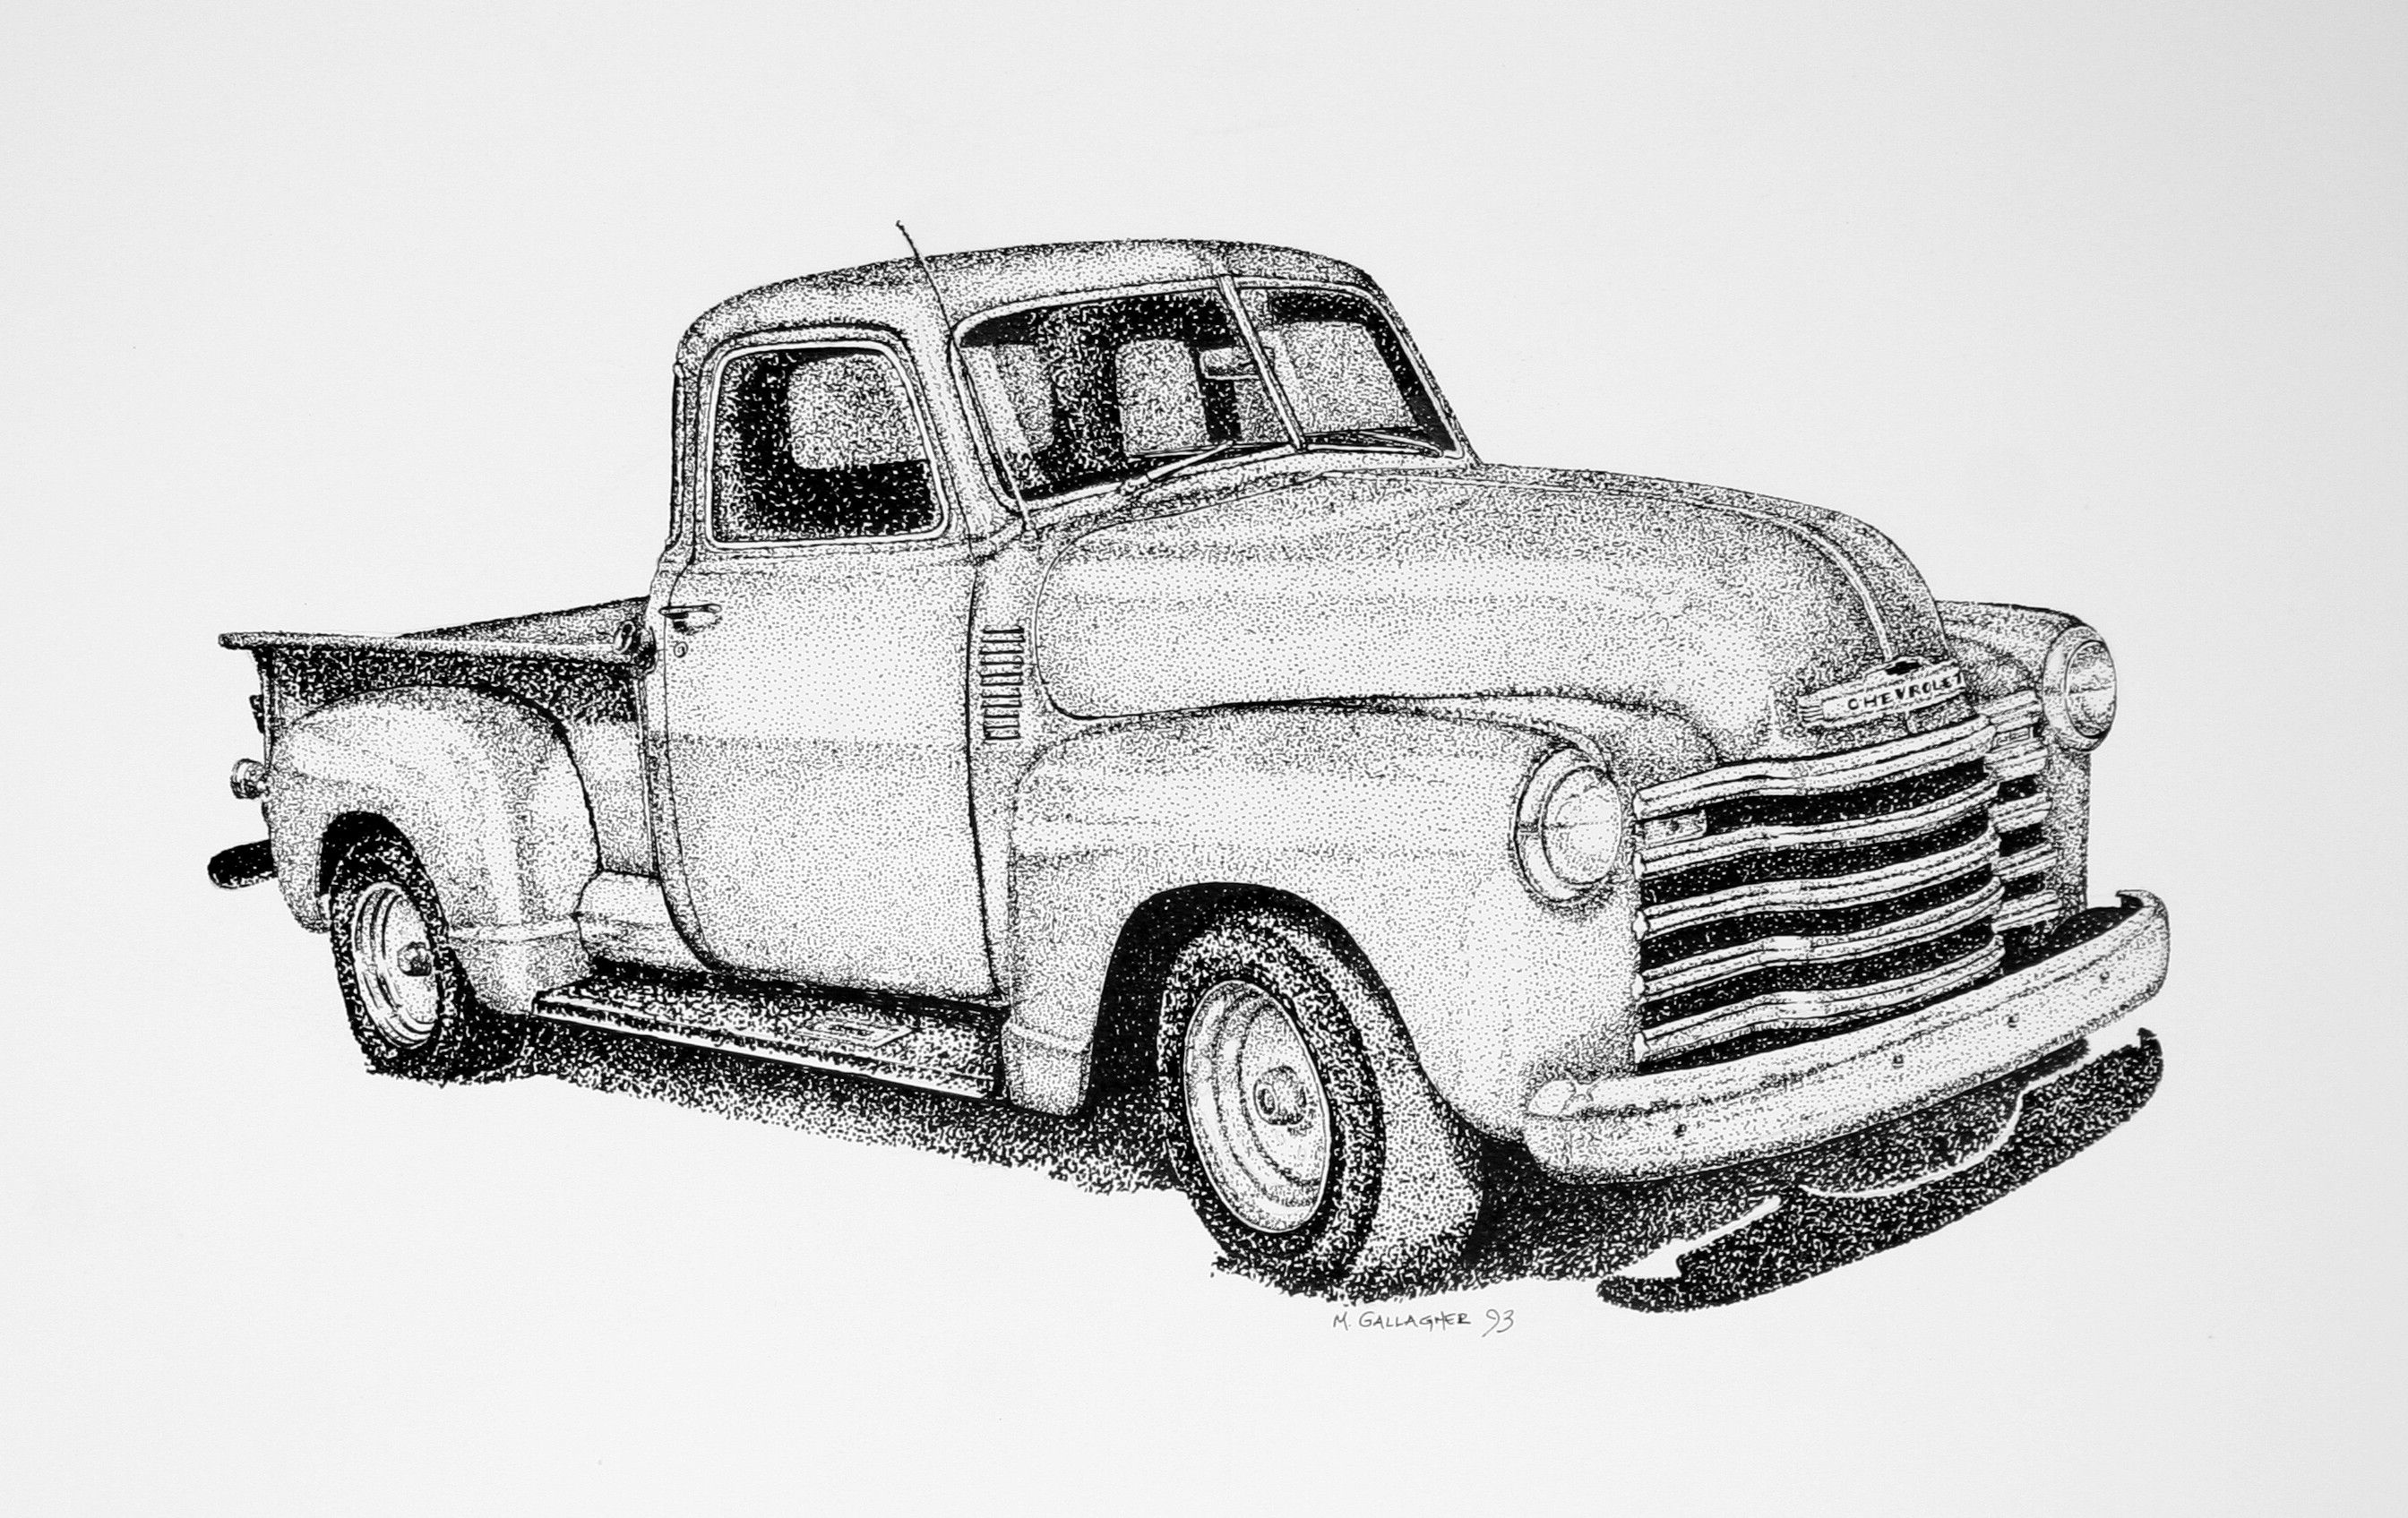 pickup truck sketch gallery auto art chevy truck [ 2688 x 1695 Pixel ]